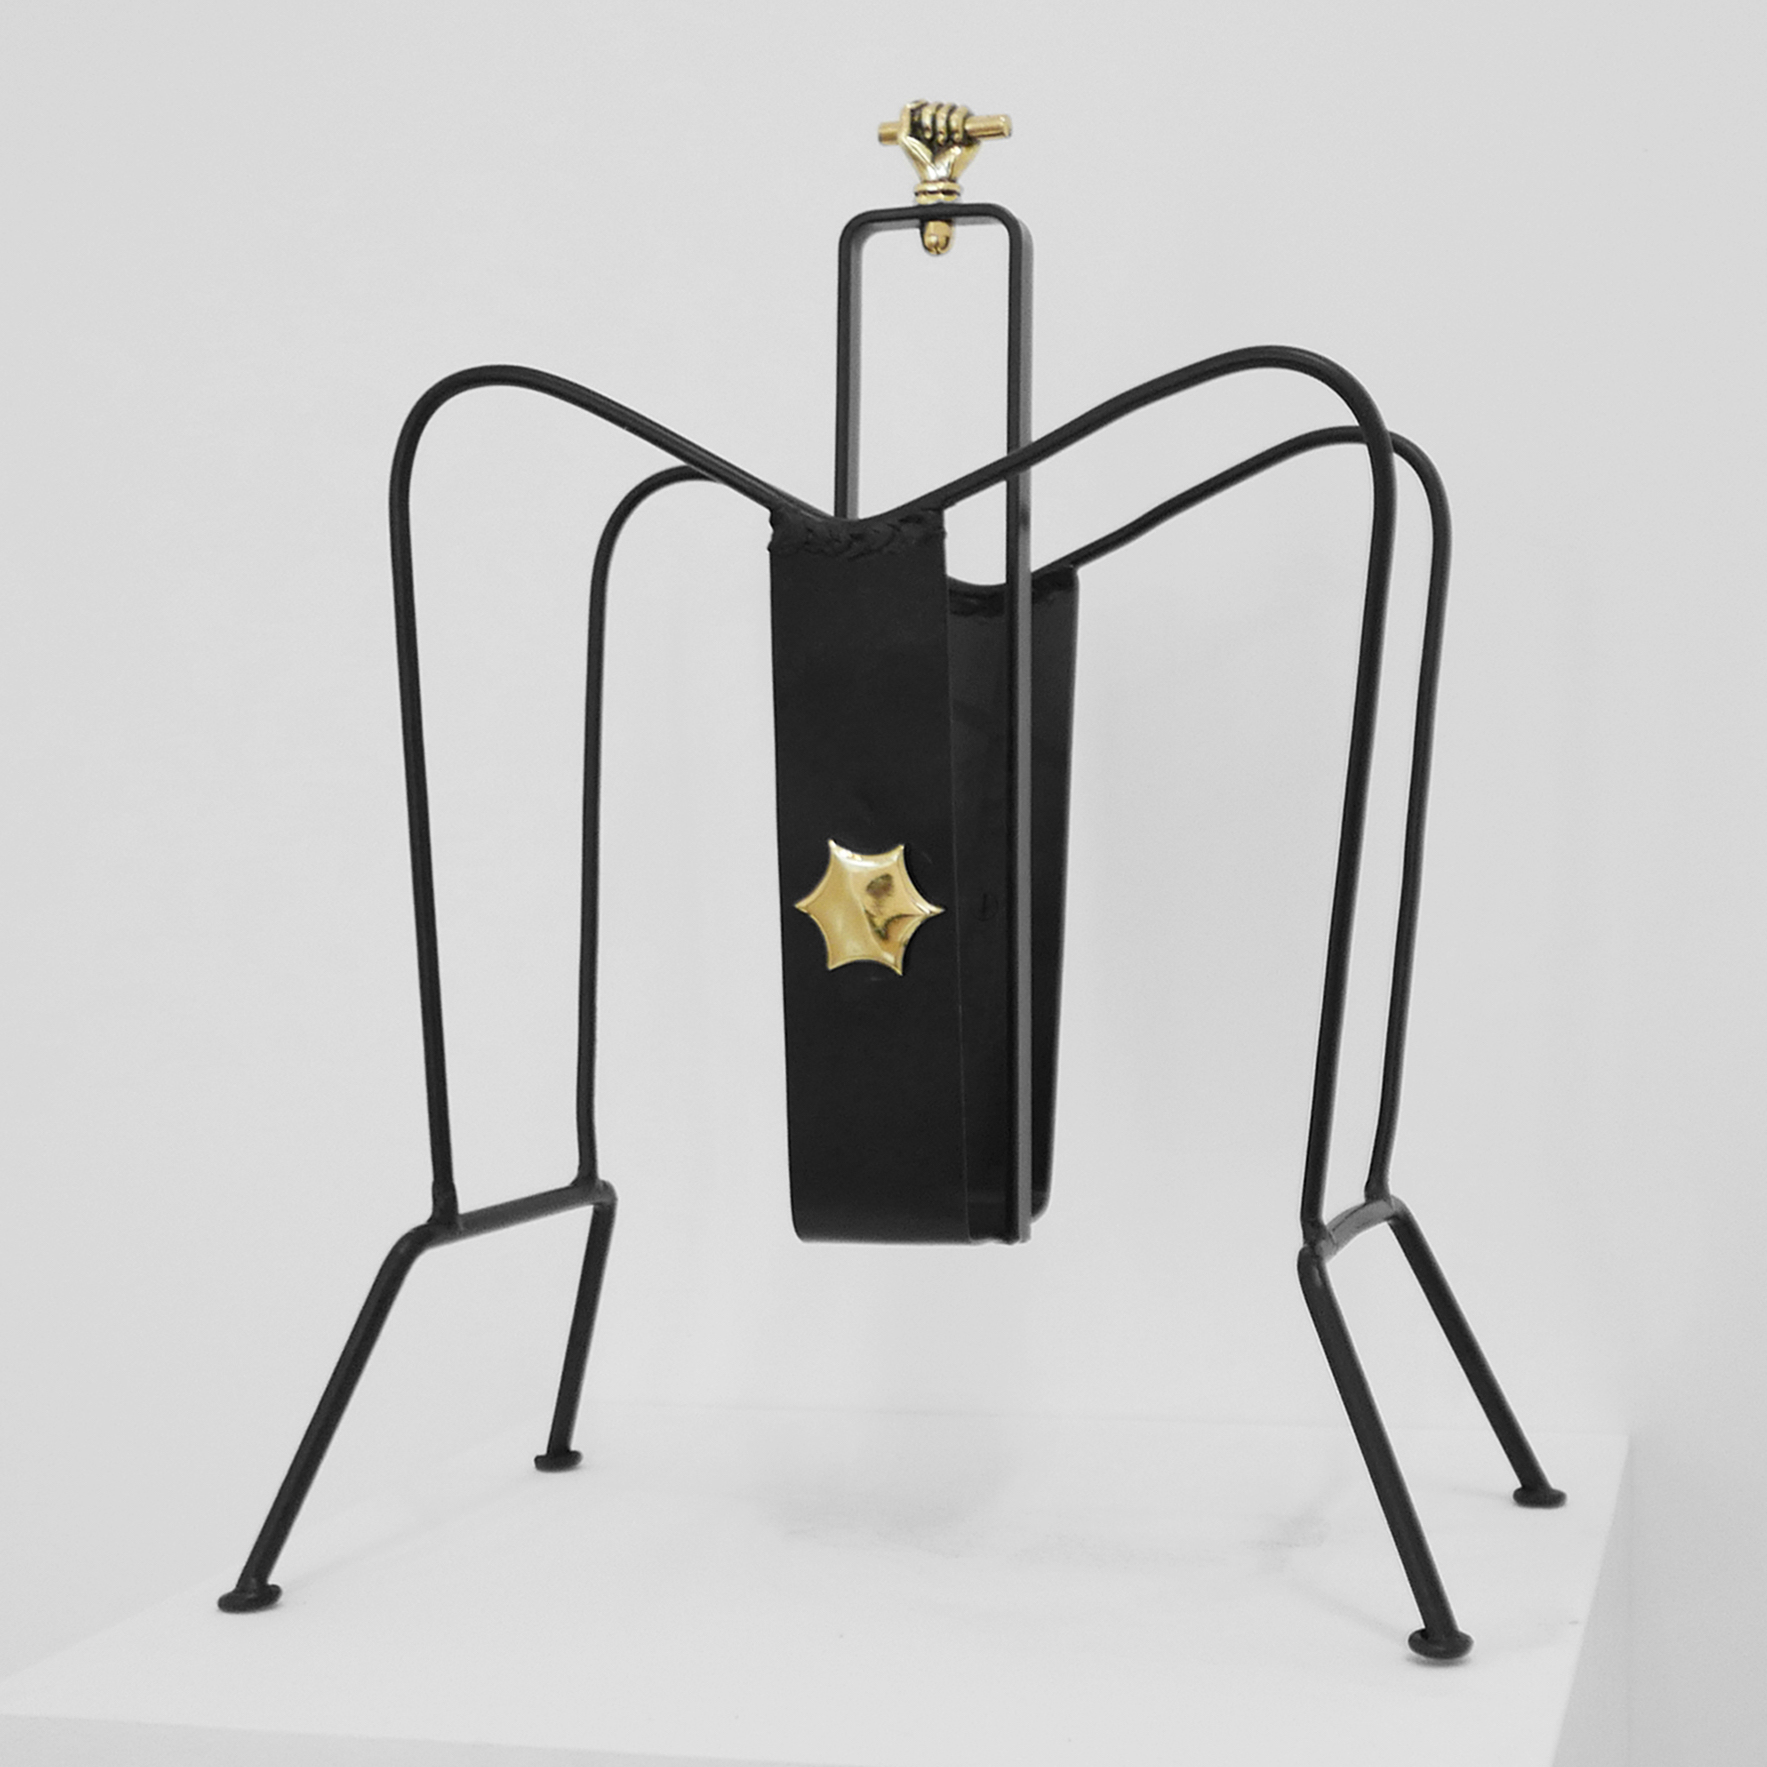 JACQUES ADNET MAGAZINE STAND $2,500